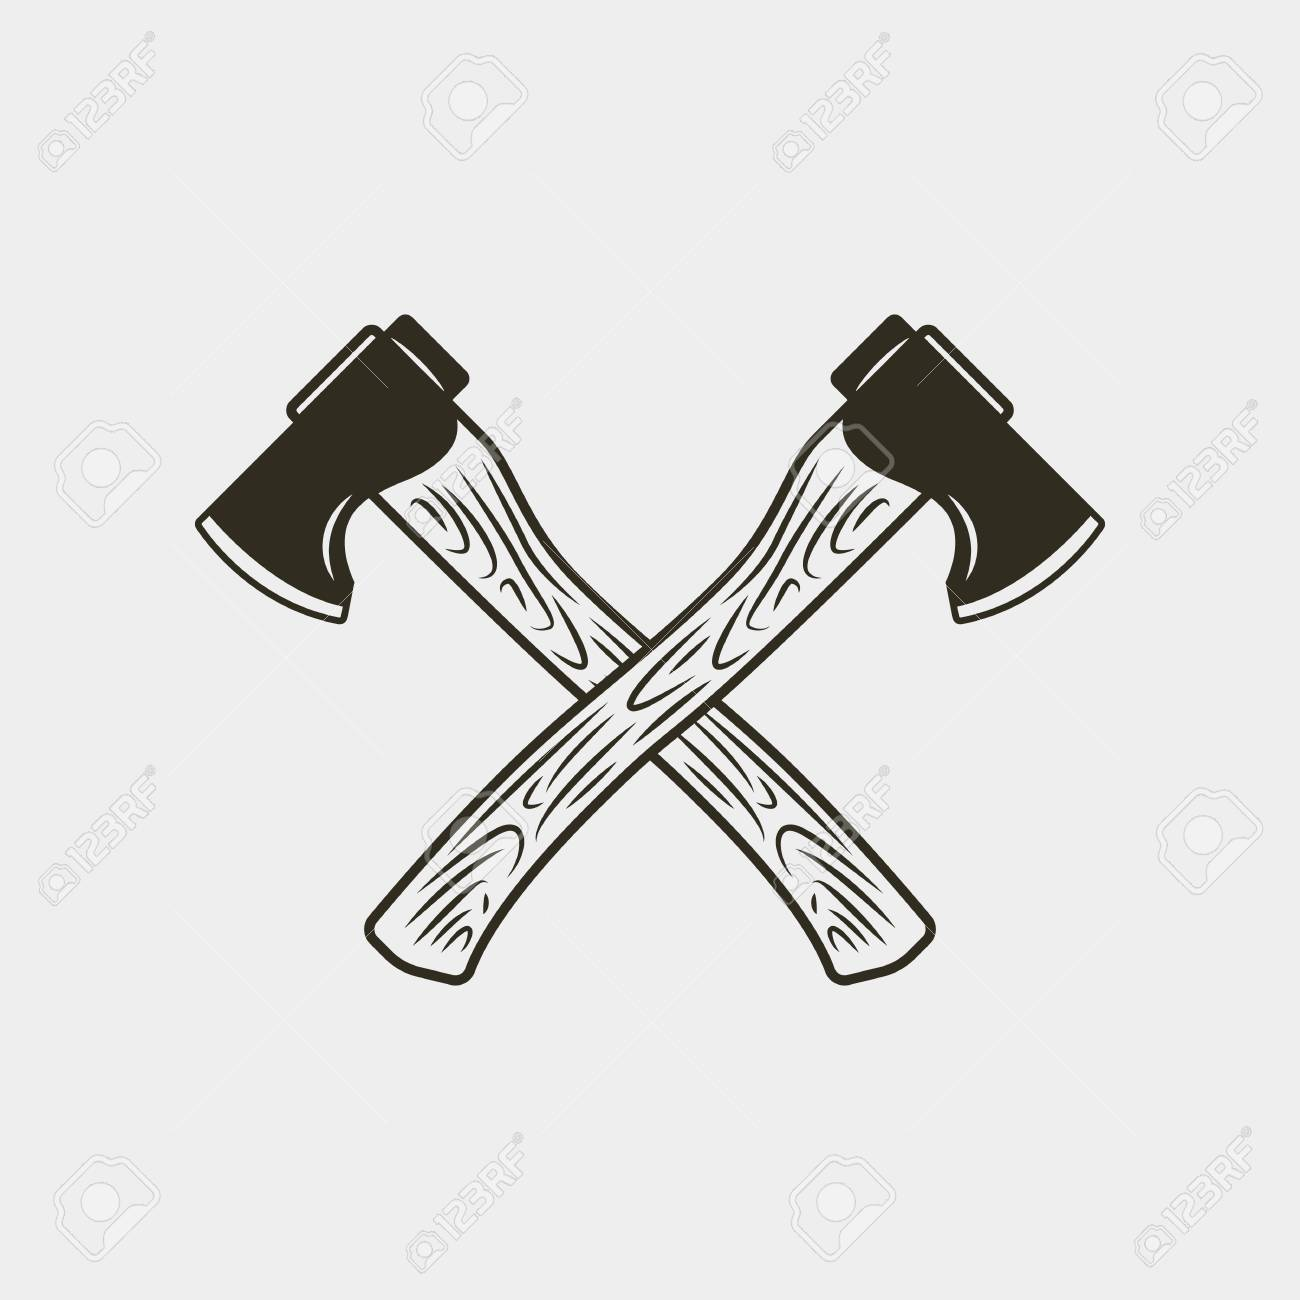 Two crossed axes isolated on white background. vector illustration.